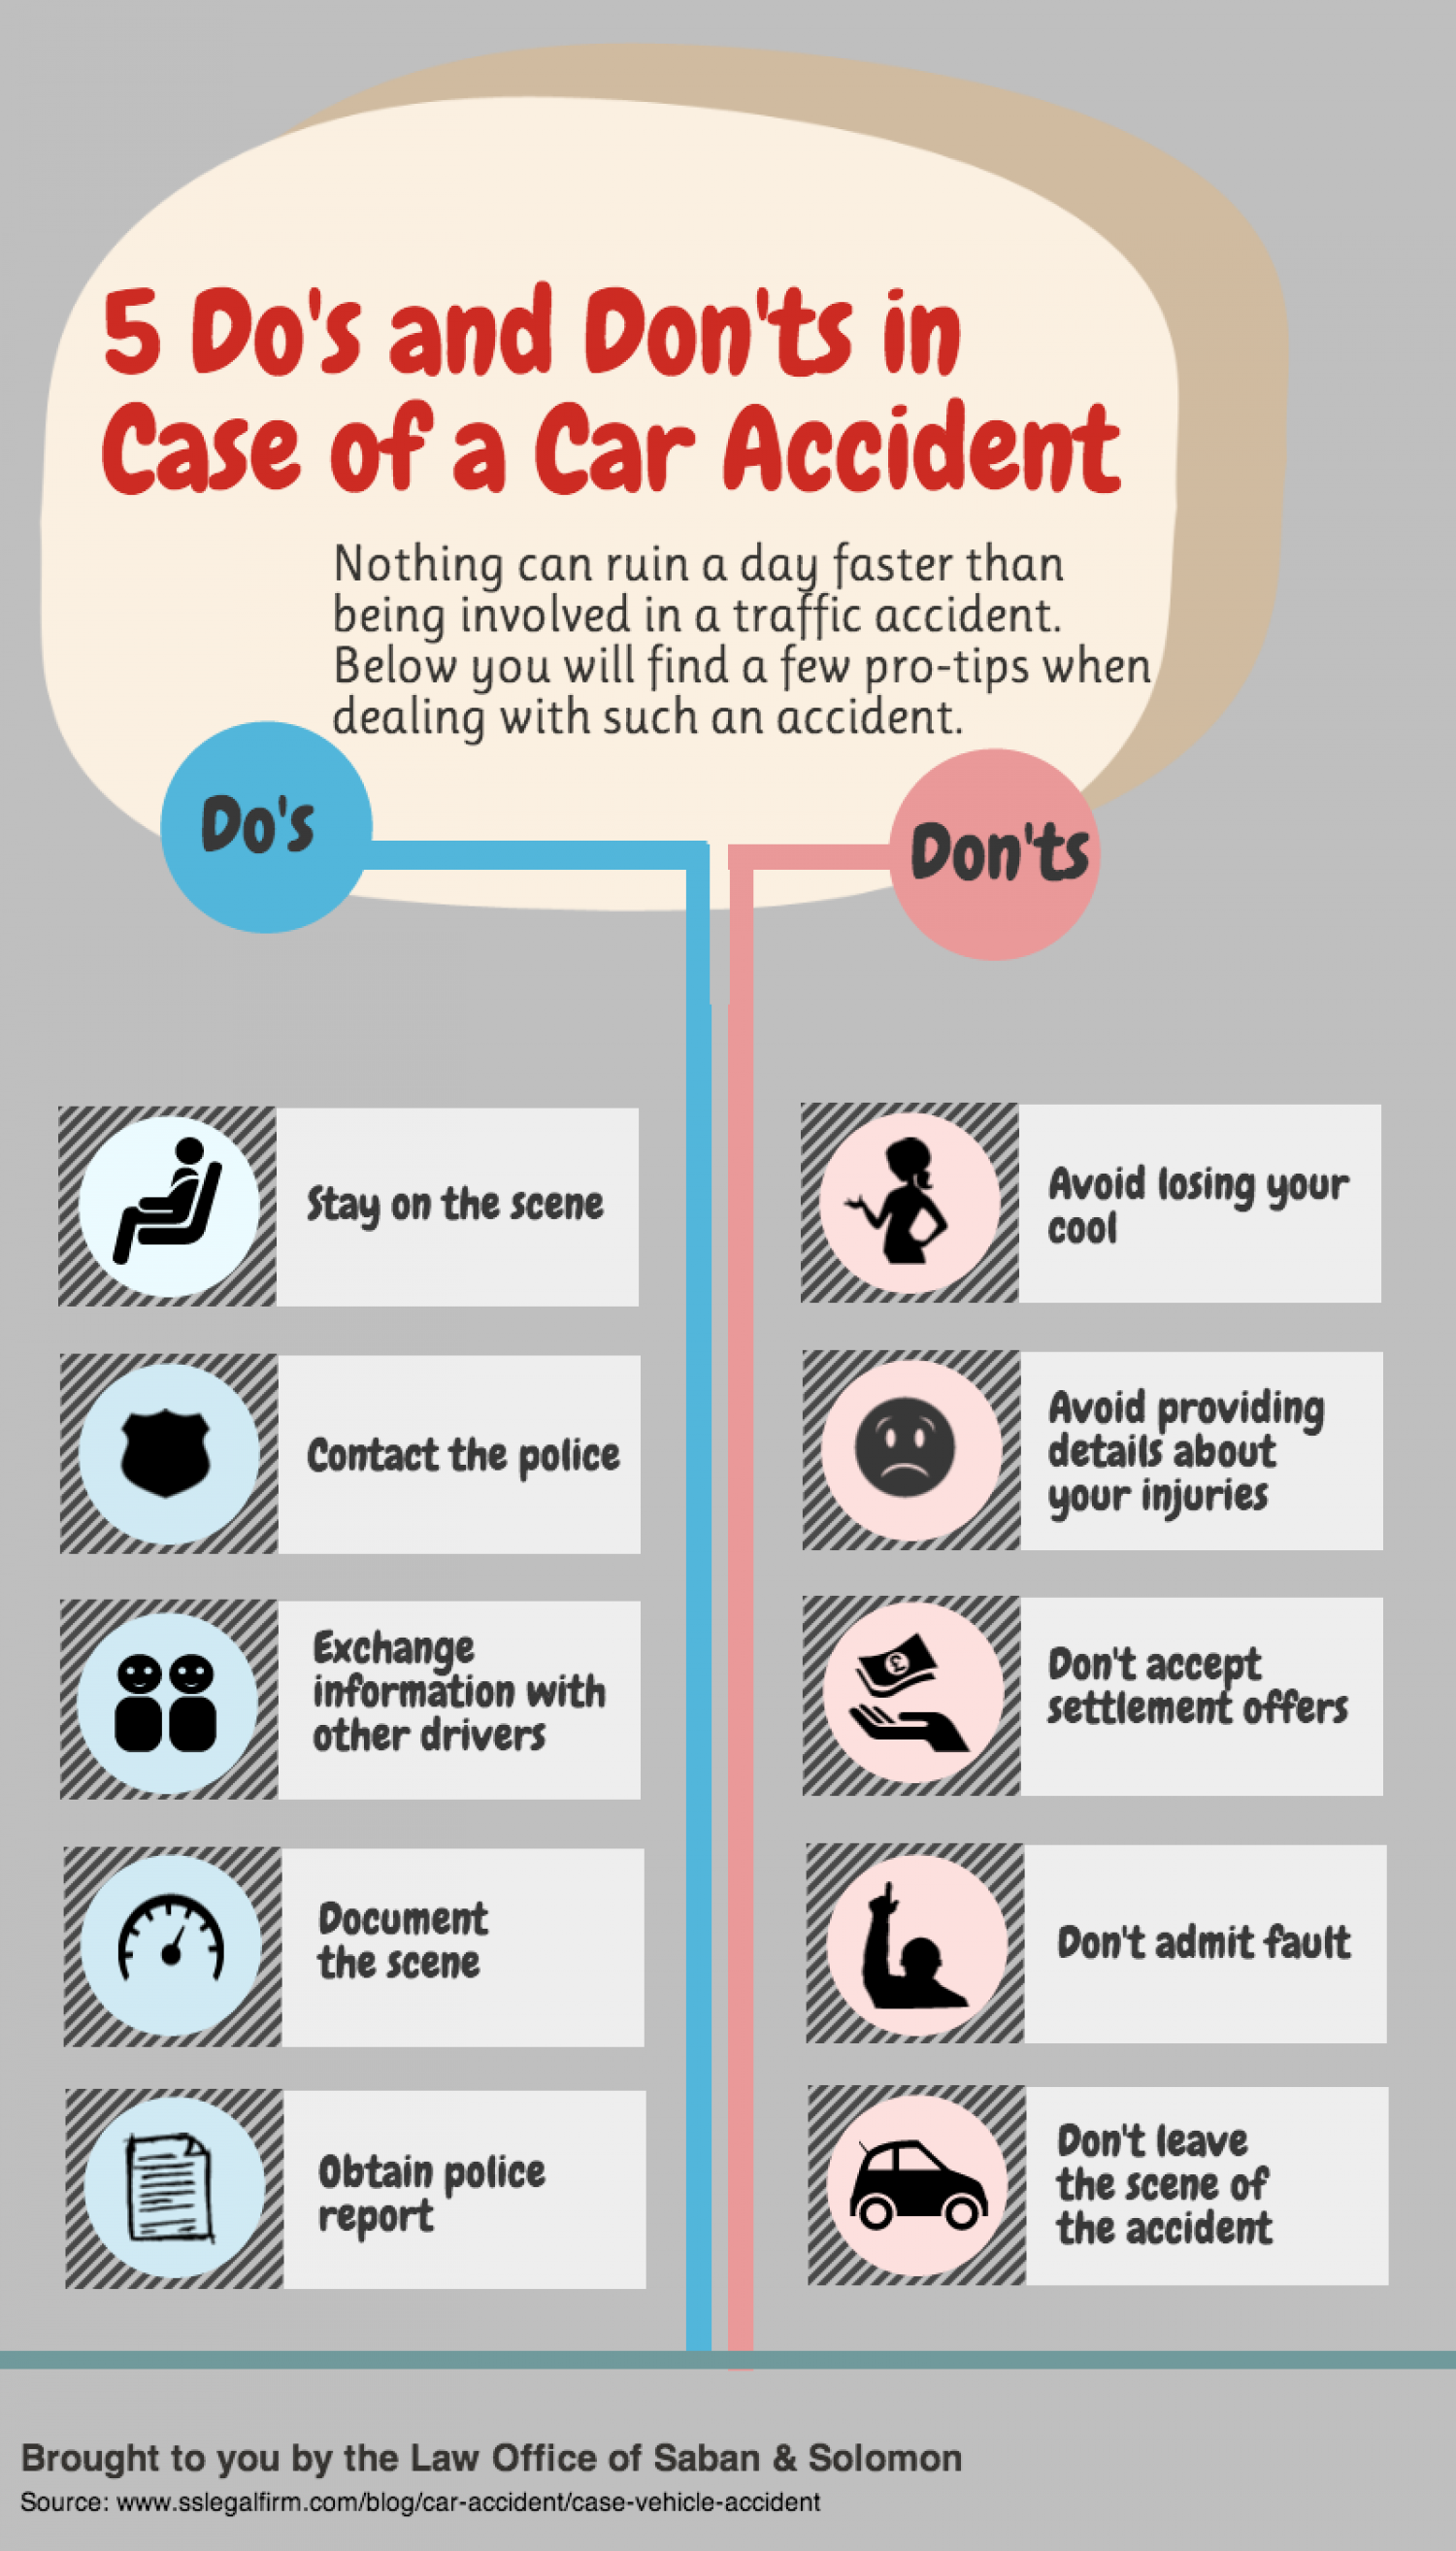 5 Do's and Don'ts in Case of a Car Accident Infographic